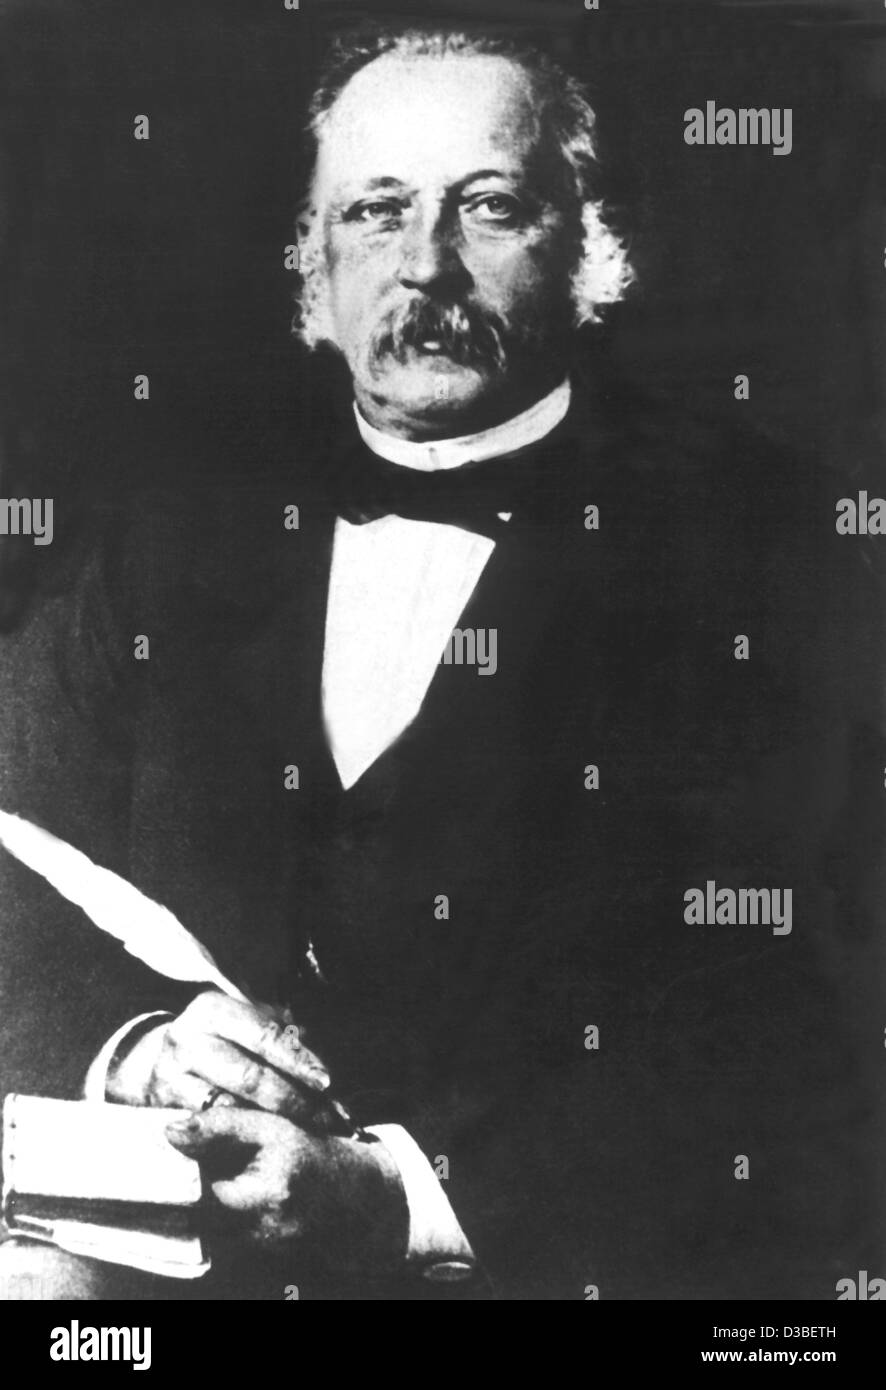 (dpa) - German author Theodor Fontane (undated filer). He was born in Neuruppin on 30 December 1819 and died in Stock Photo